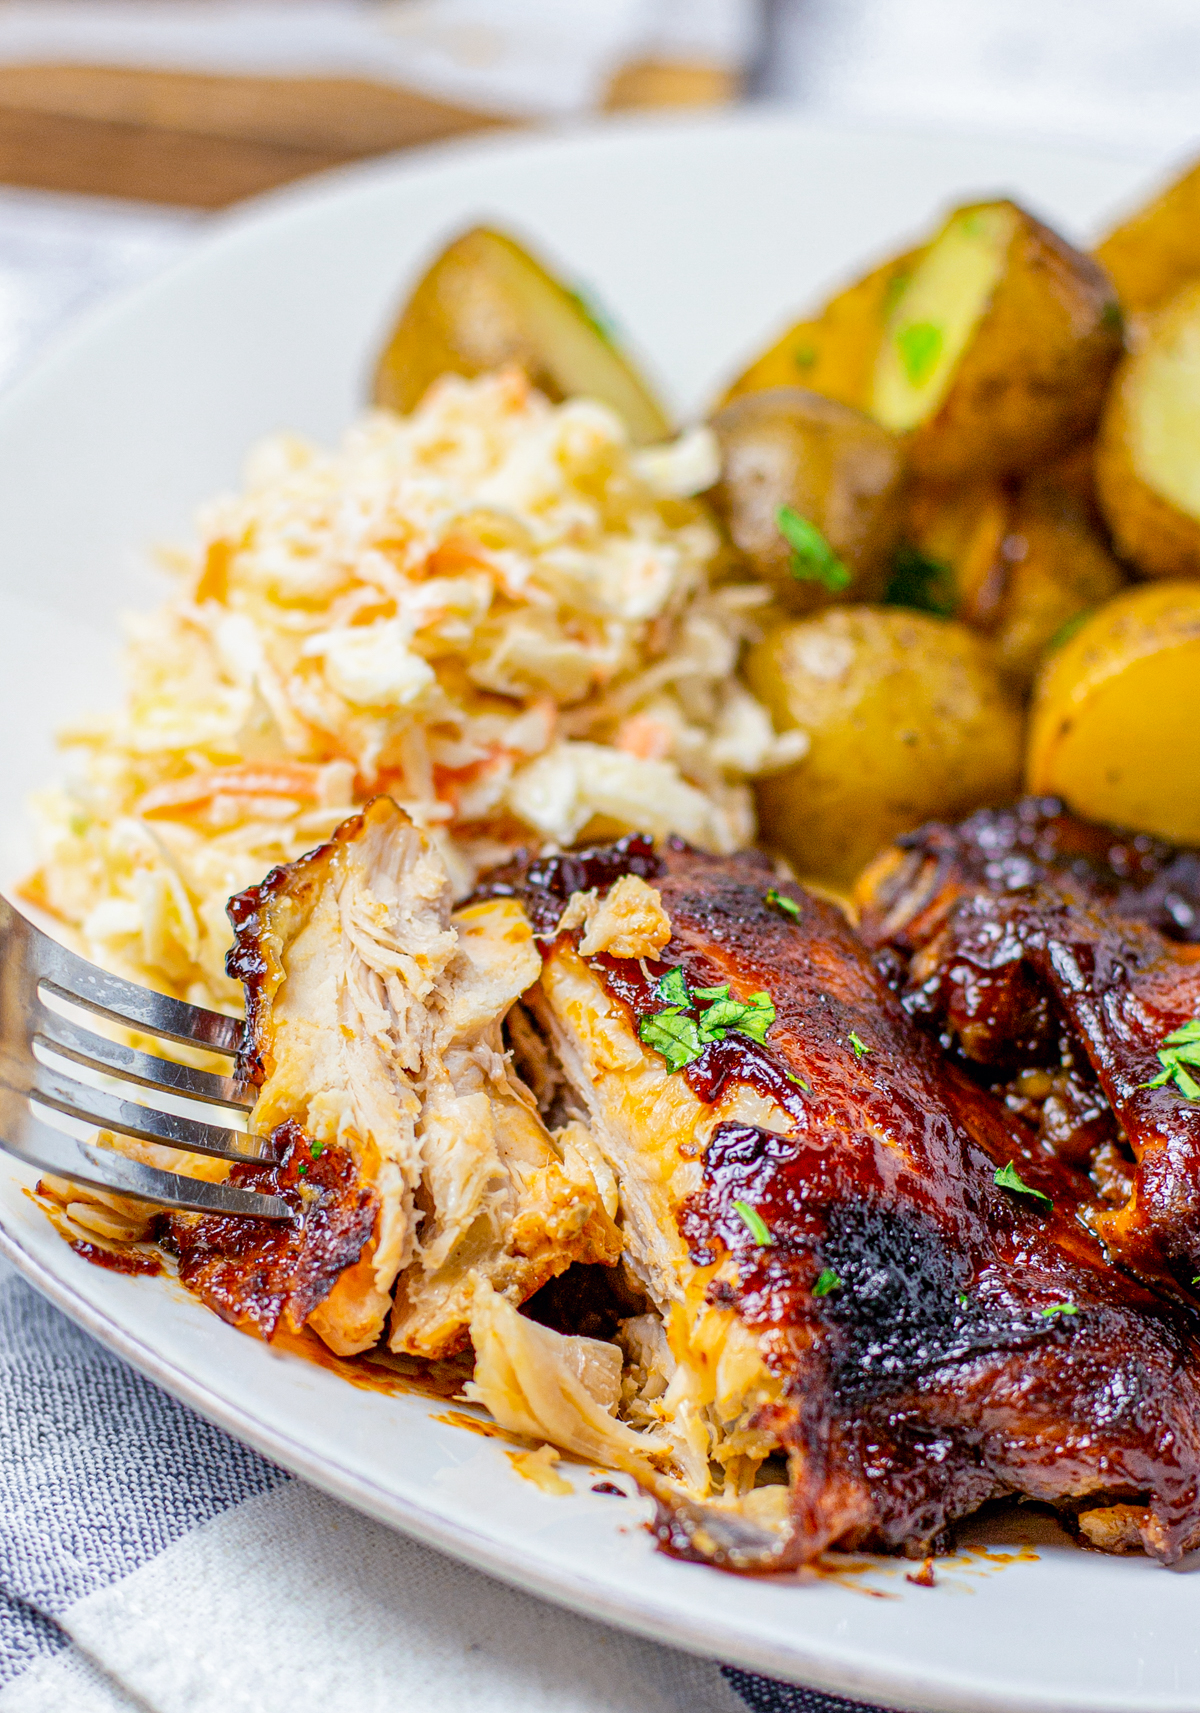 Fork pulling apart a piece of the Slow Cooker BBQ Chicken on white plate with sides